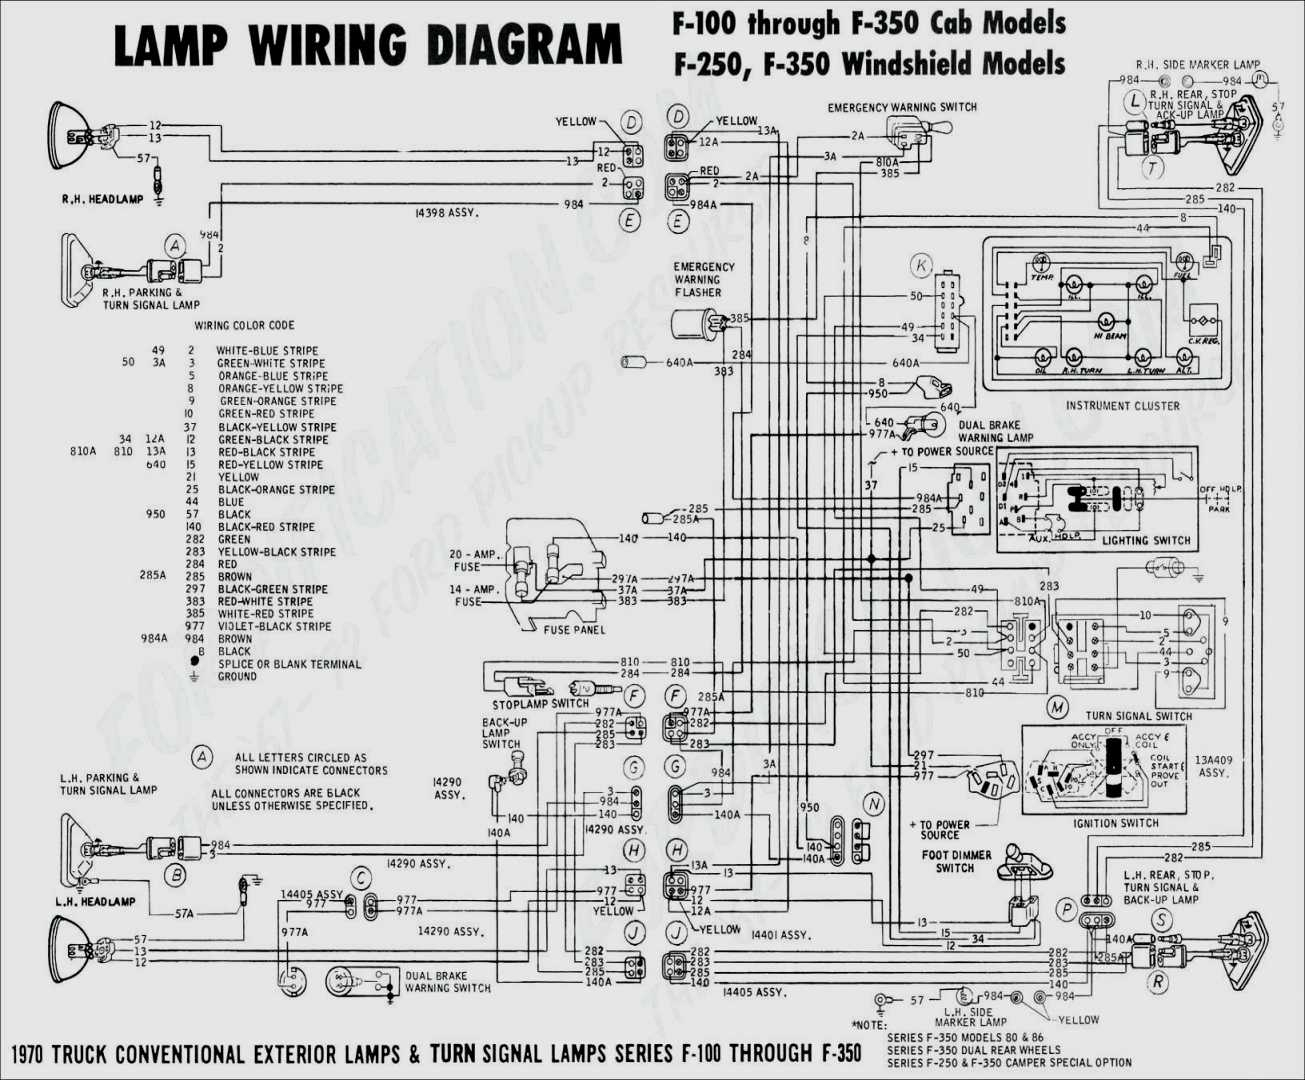 [DIAGRAM] 7 Pole Trailer Plug Wiring Diagram FULL Version